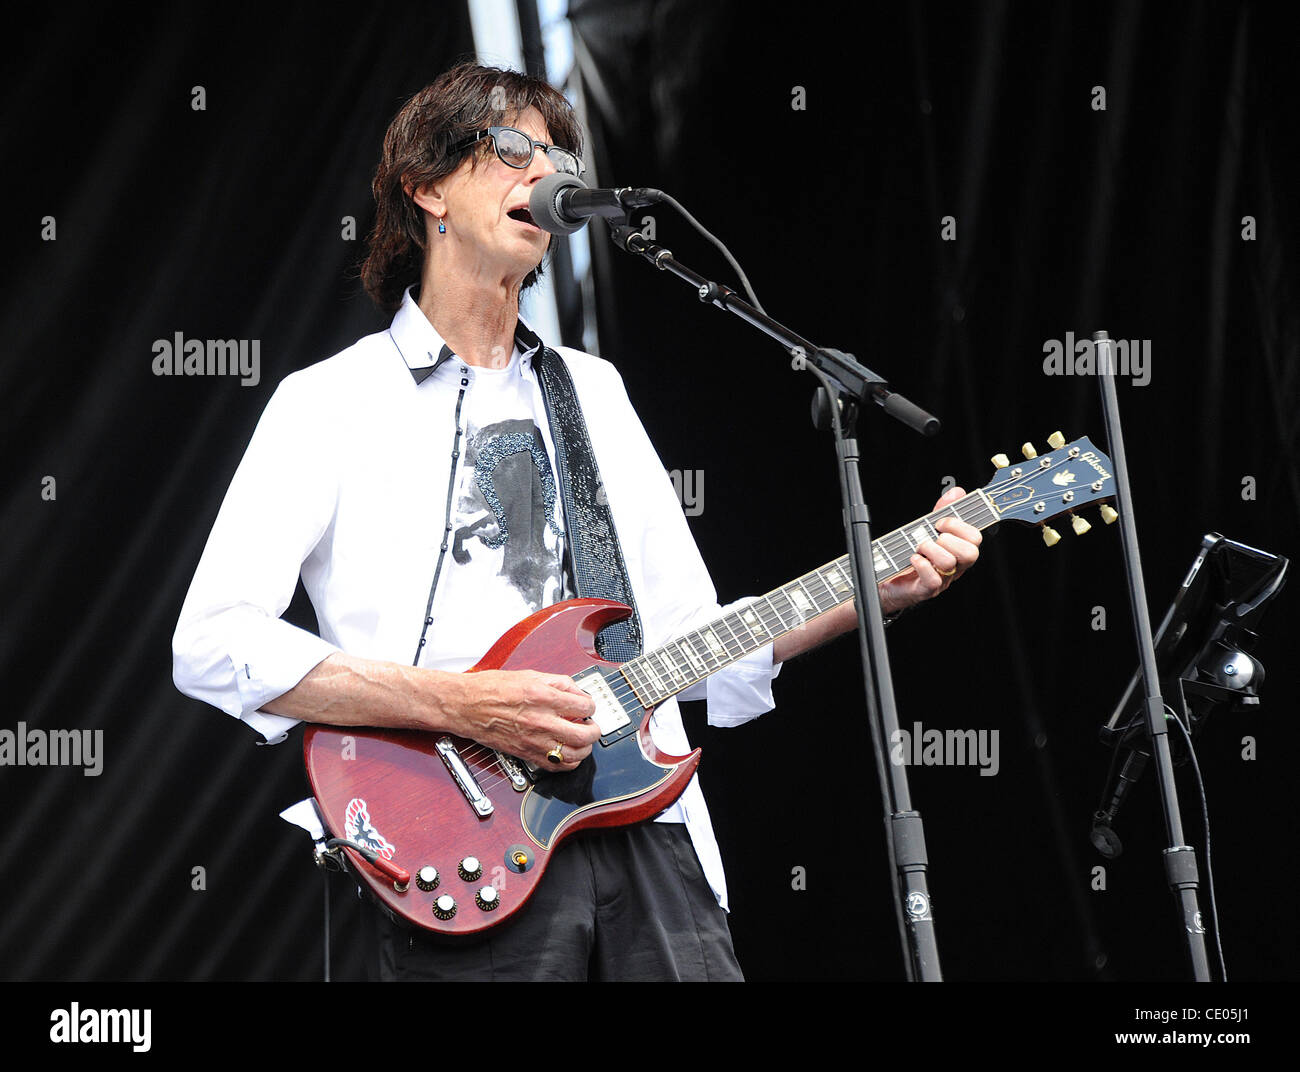 Aug 7, 2011 - Chicago, Illinois; USA - Musician RICK OCASEK of The Cars performs live as part of the 20th Anniversary - Stock Image